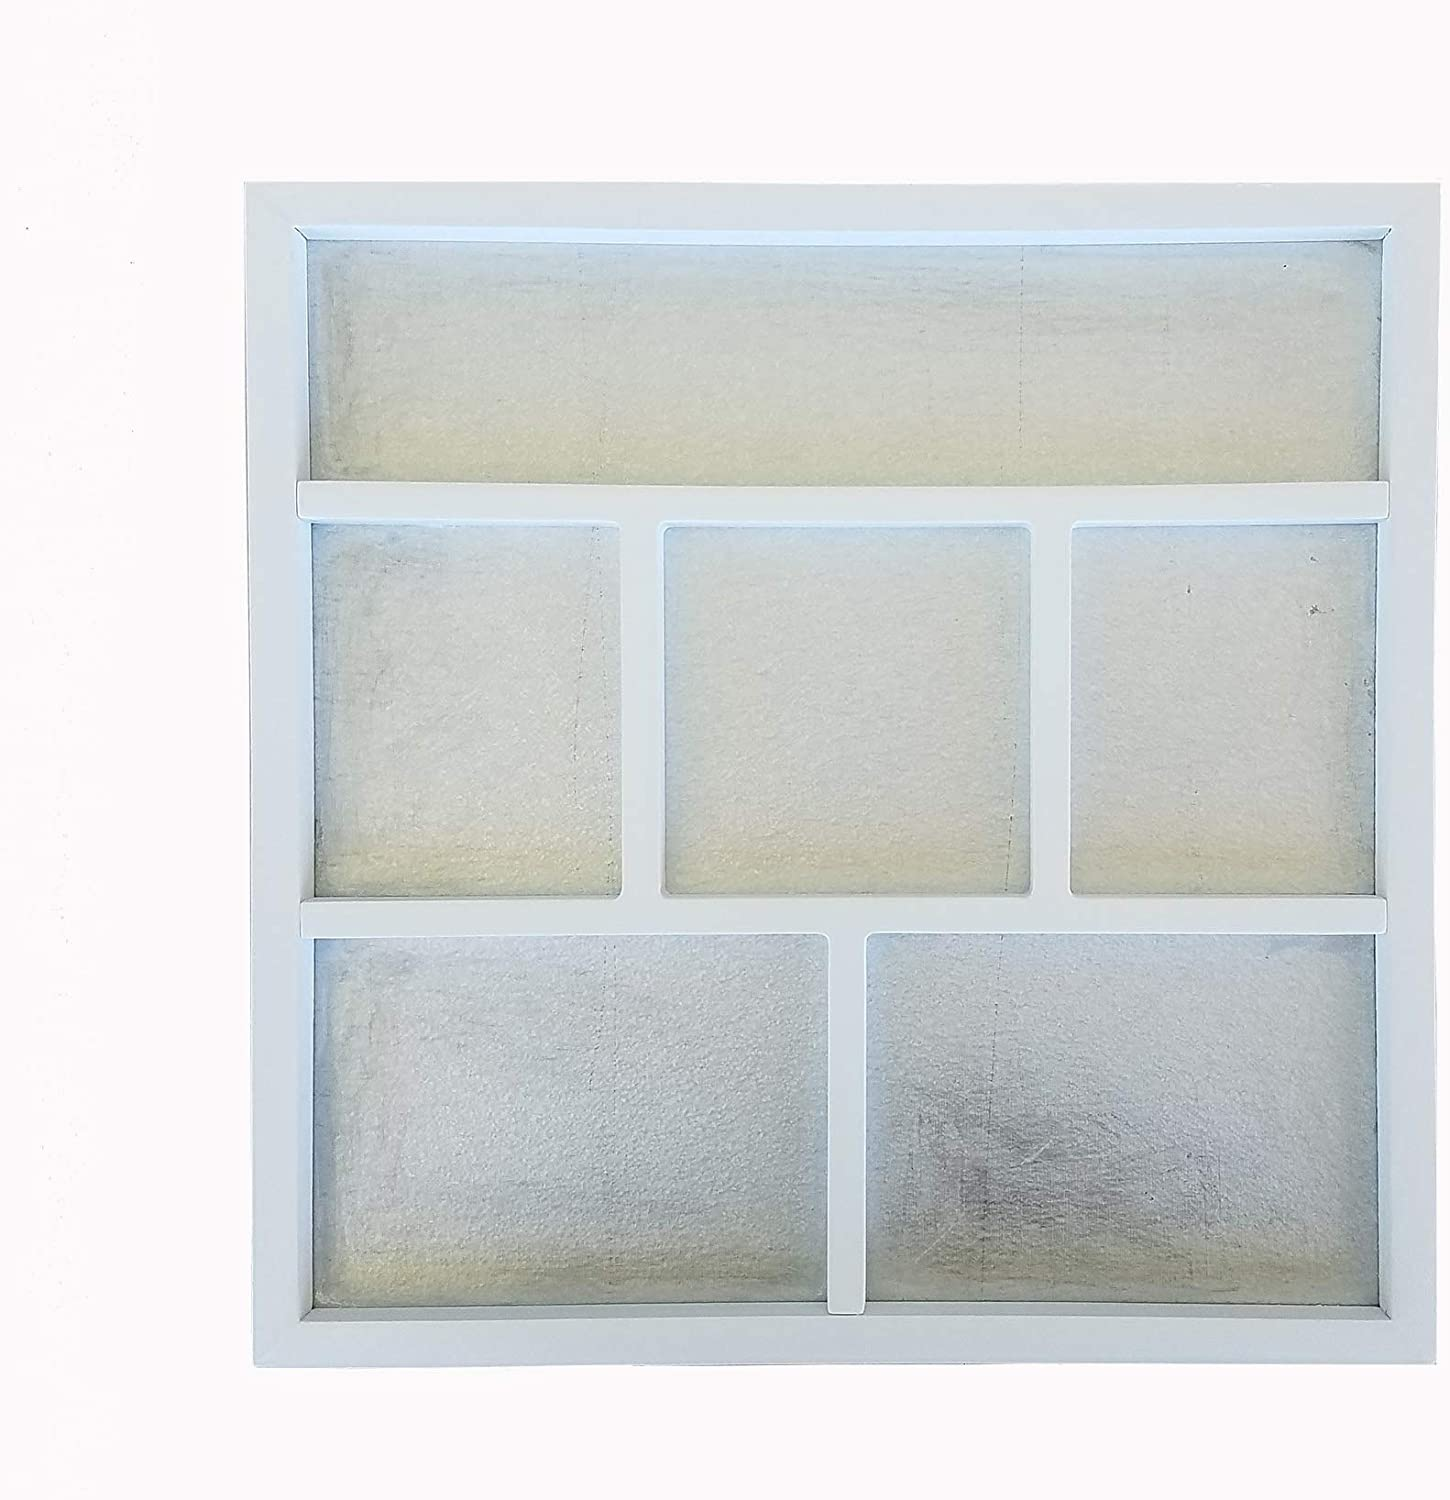 Foundations Décor, Shadow Box, Magnetic - White